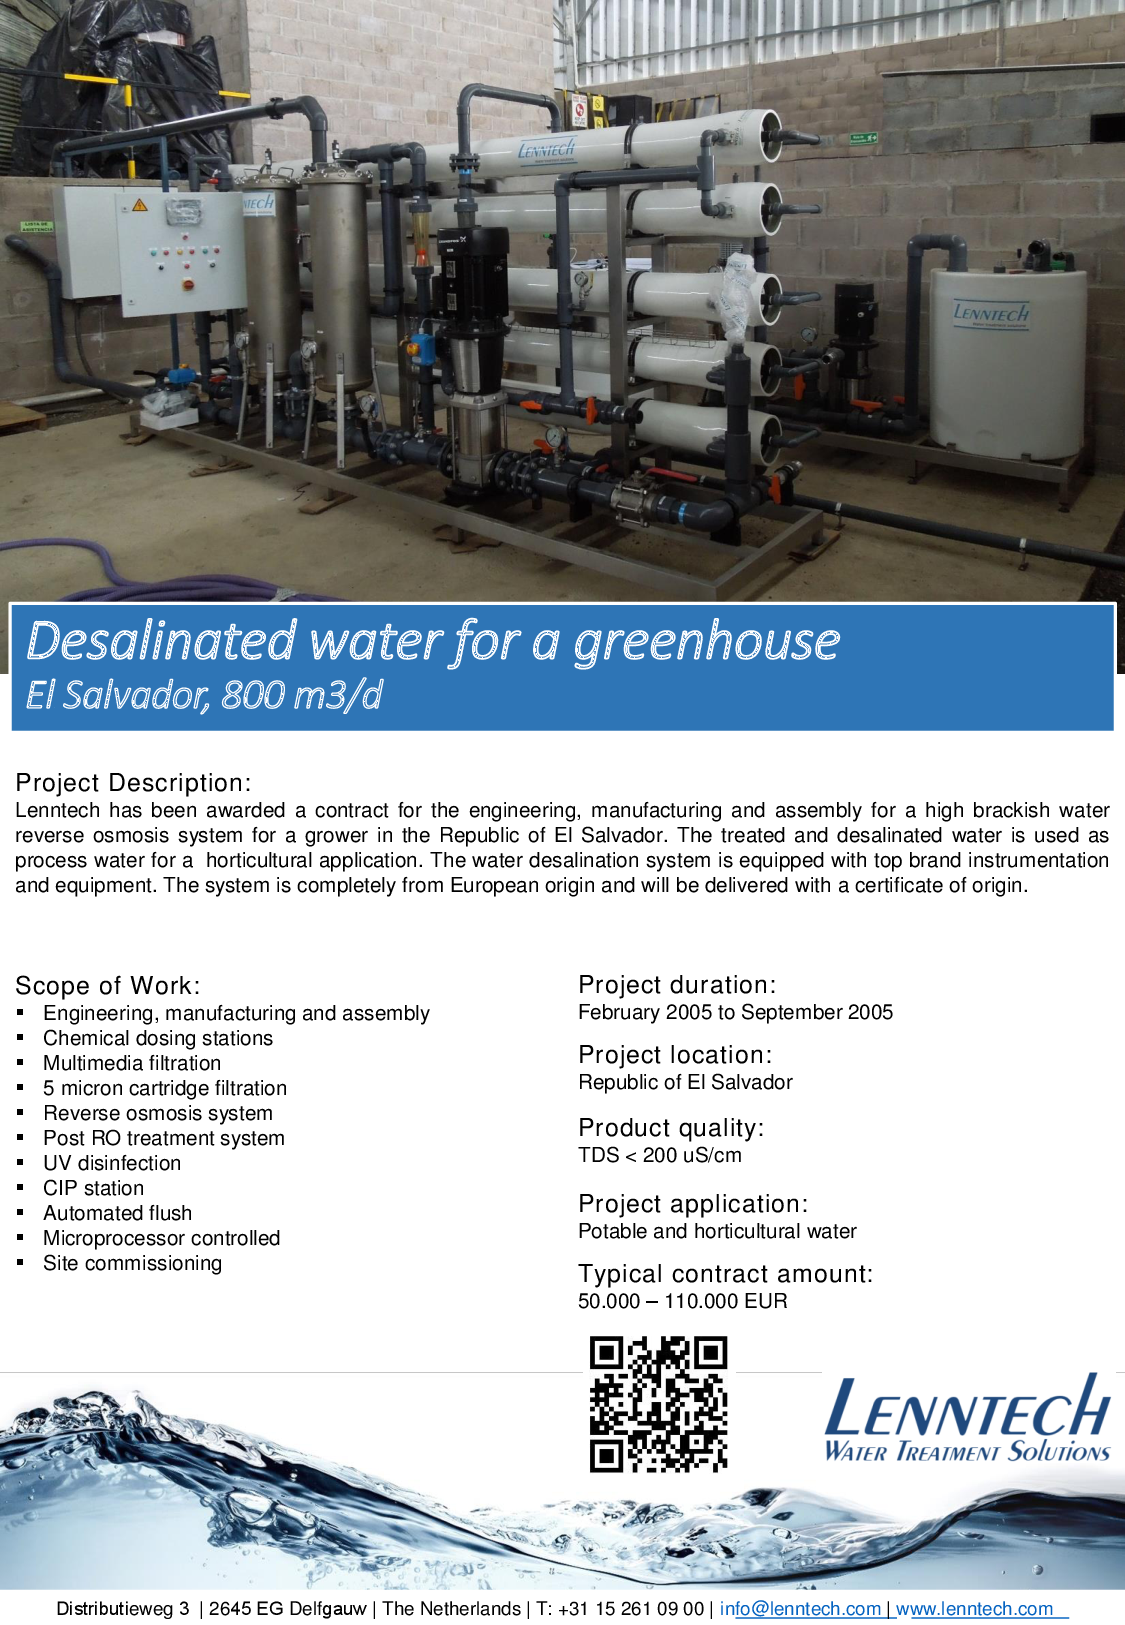 Desalinated water for a greenhouse